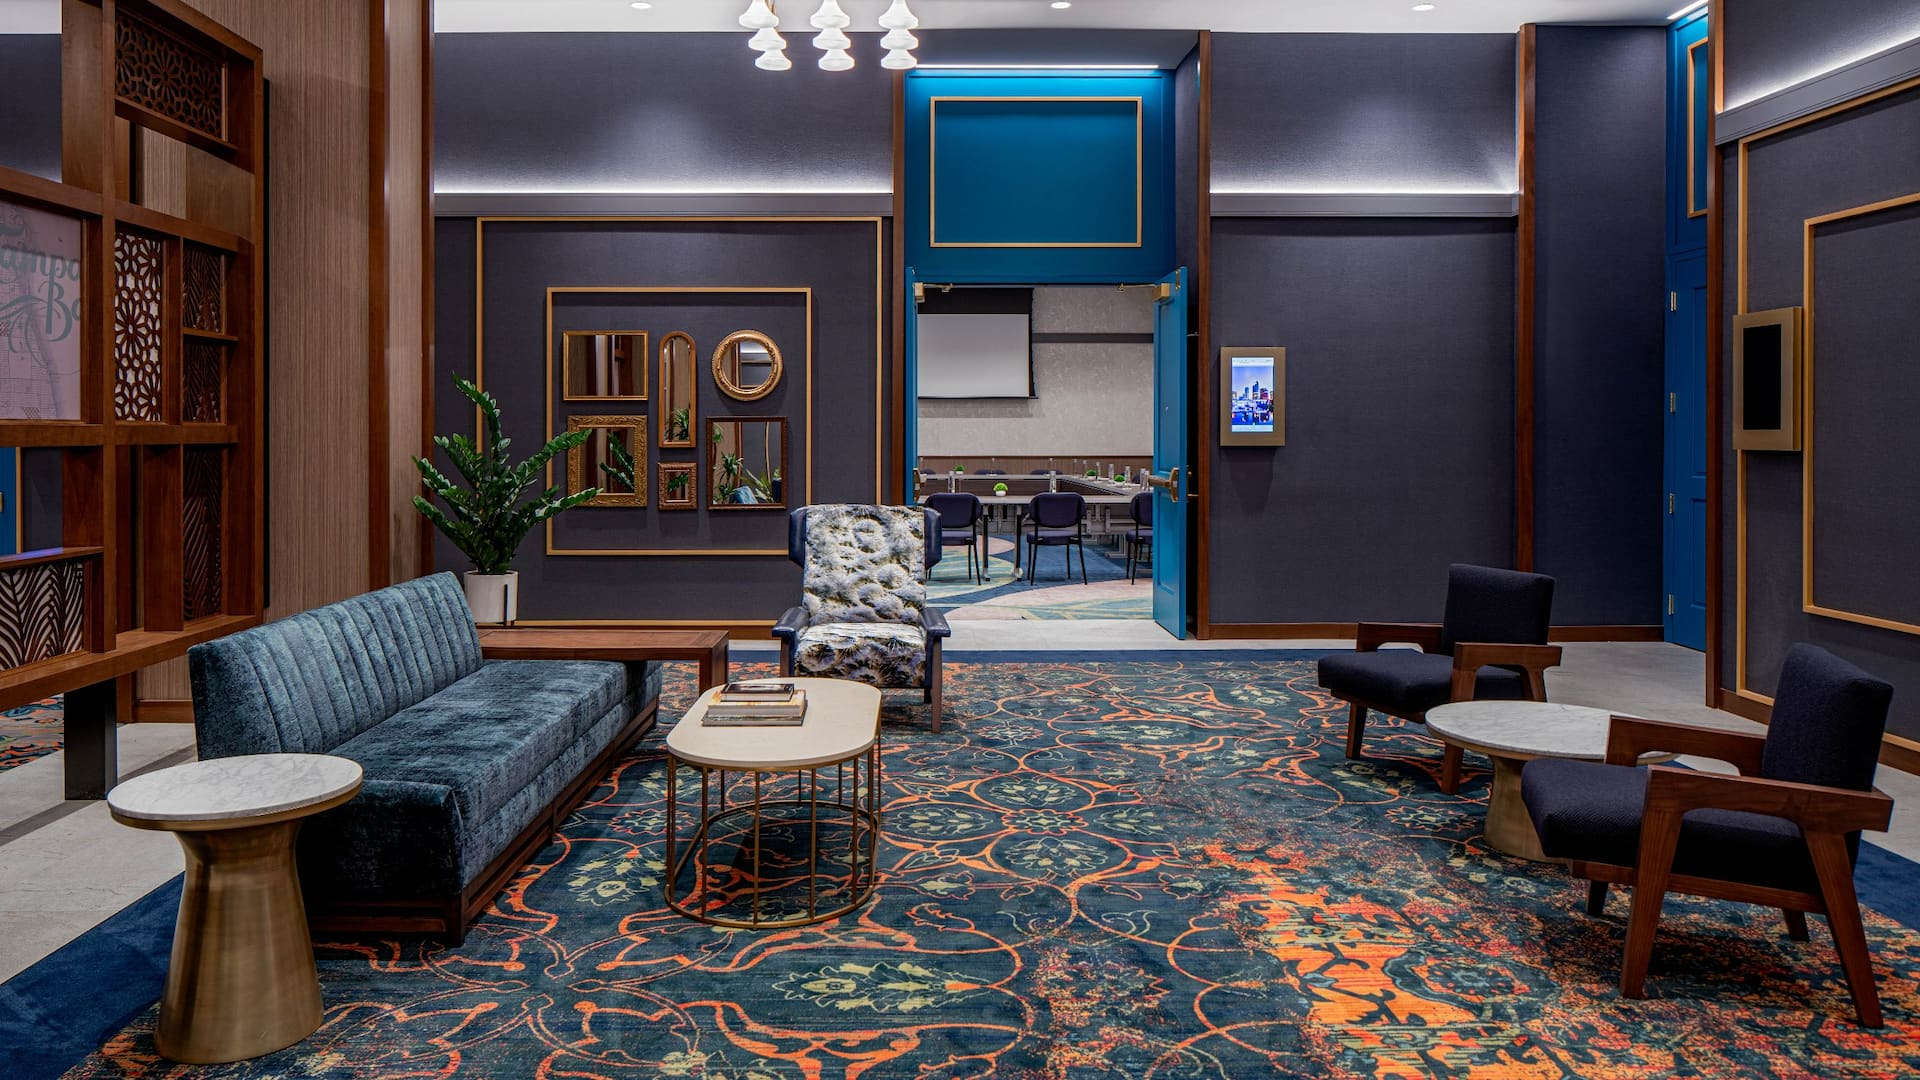 Meetings and Events at Hyatt House Tampa Downtown